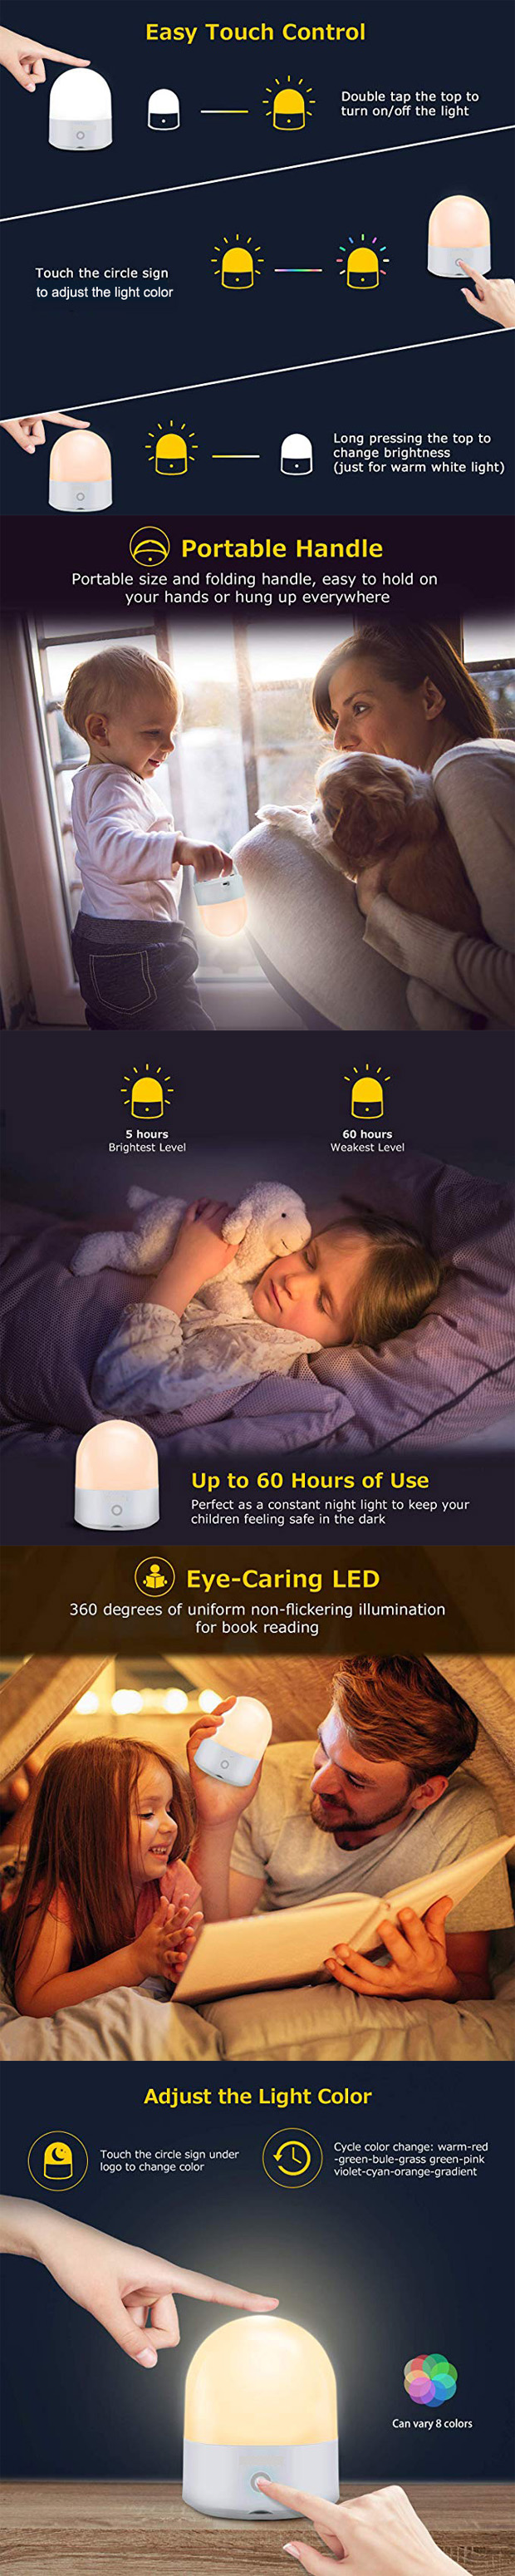 Portable Hallway Night Light USB Rechargable Touch Control Customized Color